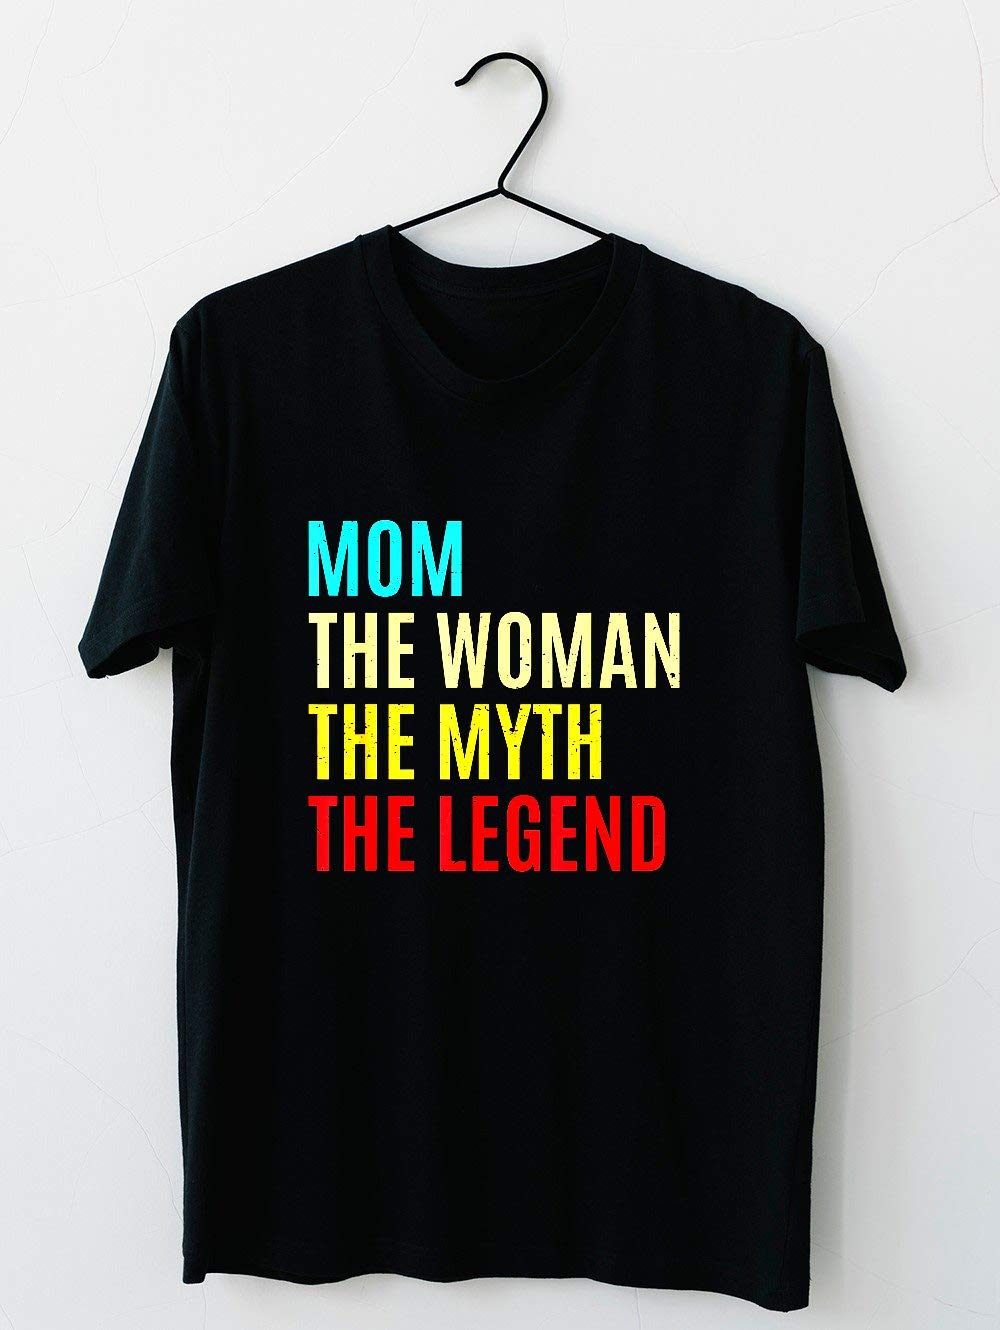 Mom The Woman The Myth The Legend Mothers Day Gift For Wife Cotton Short Sleeve T Shirt H